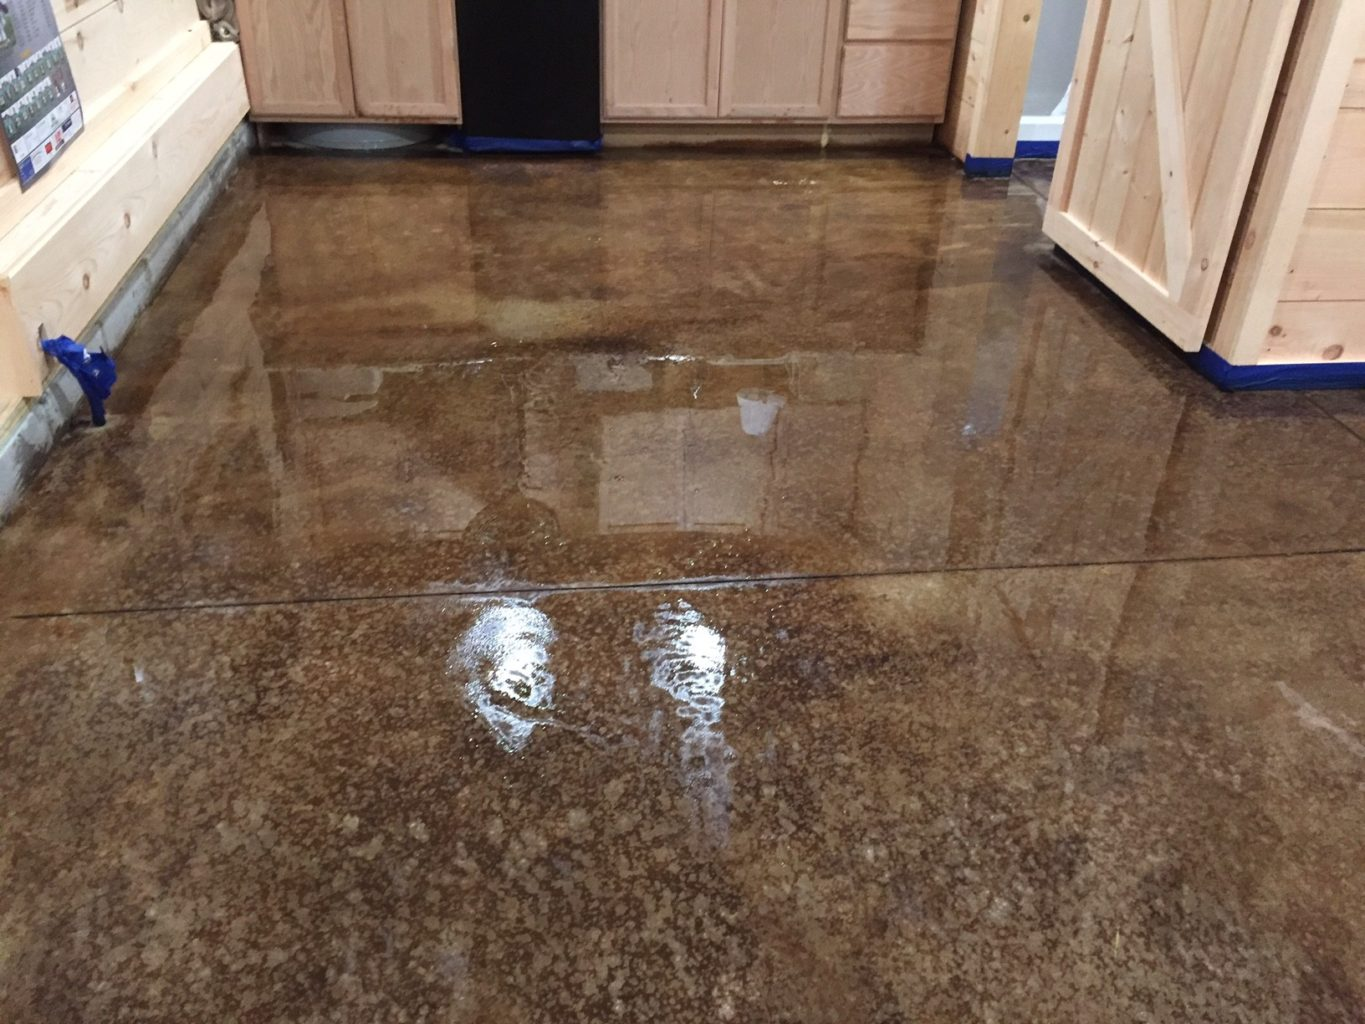 Acid staining our concrete floors an expensive look at for Stained concrete floors